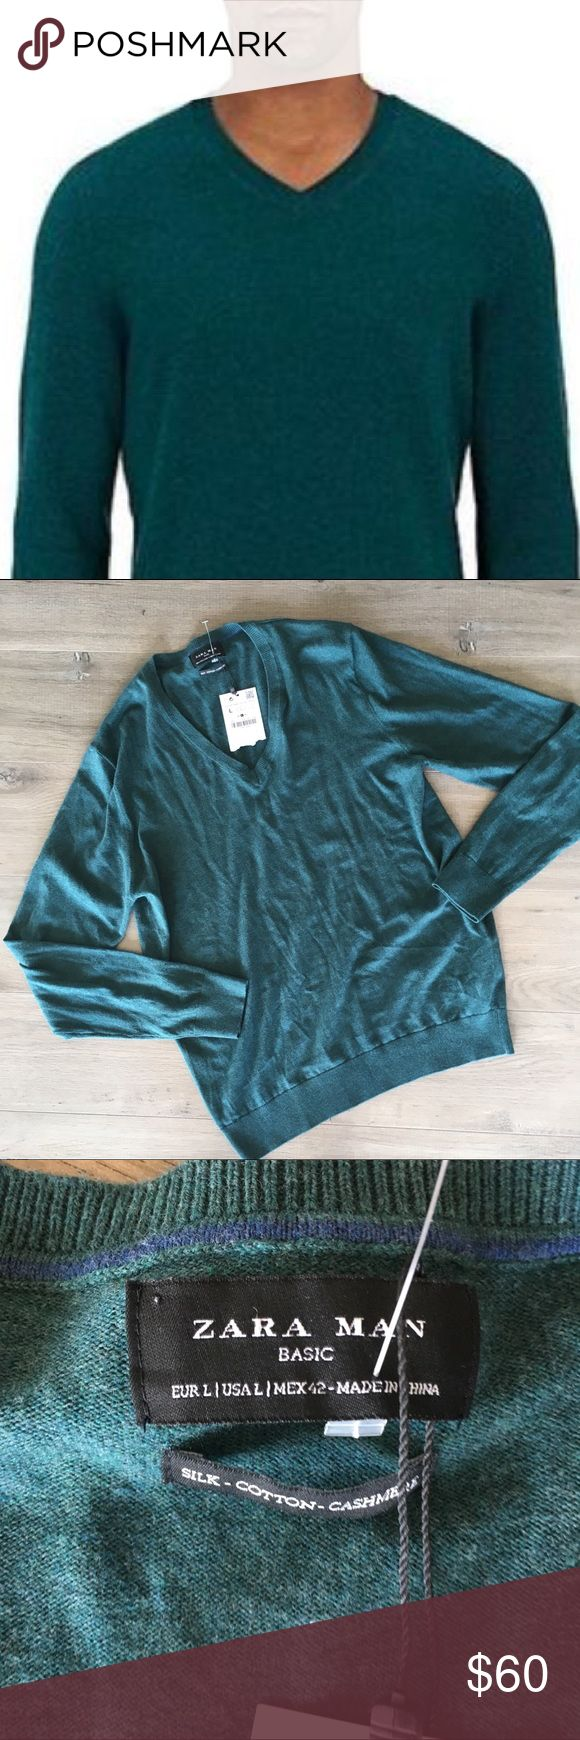 """ZARA MAN ~ teal green silk cashmere vneck sweater ZARA MAN ~  Zara brand  Teal green sweater  Men's cashmere sweater  Long sleeve  Silk cashmere cotton blend fabric  Men's vneck sweater  New with tags attached  Size large  Made in China   Beautiful sweater for all occasions can dress it up or down   Flat measurements: Chest 21"""" Length 27"""" Zara Sweaters V-Neck"""